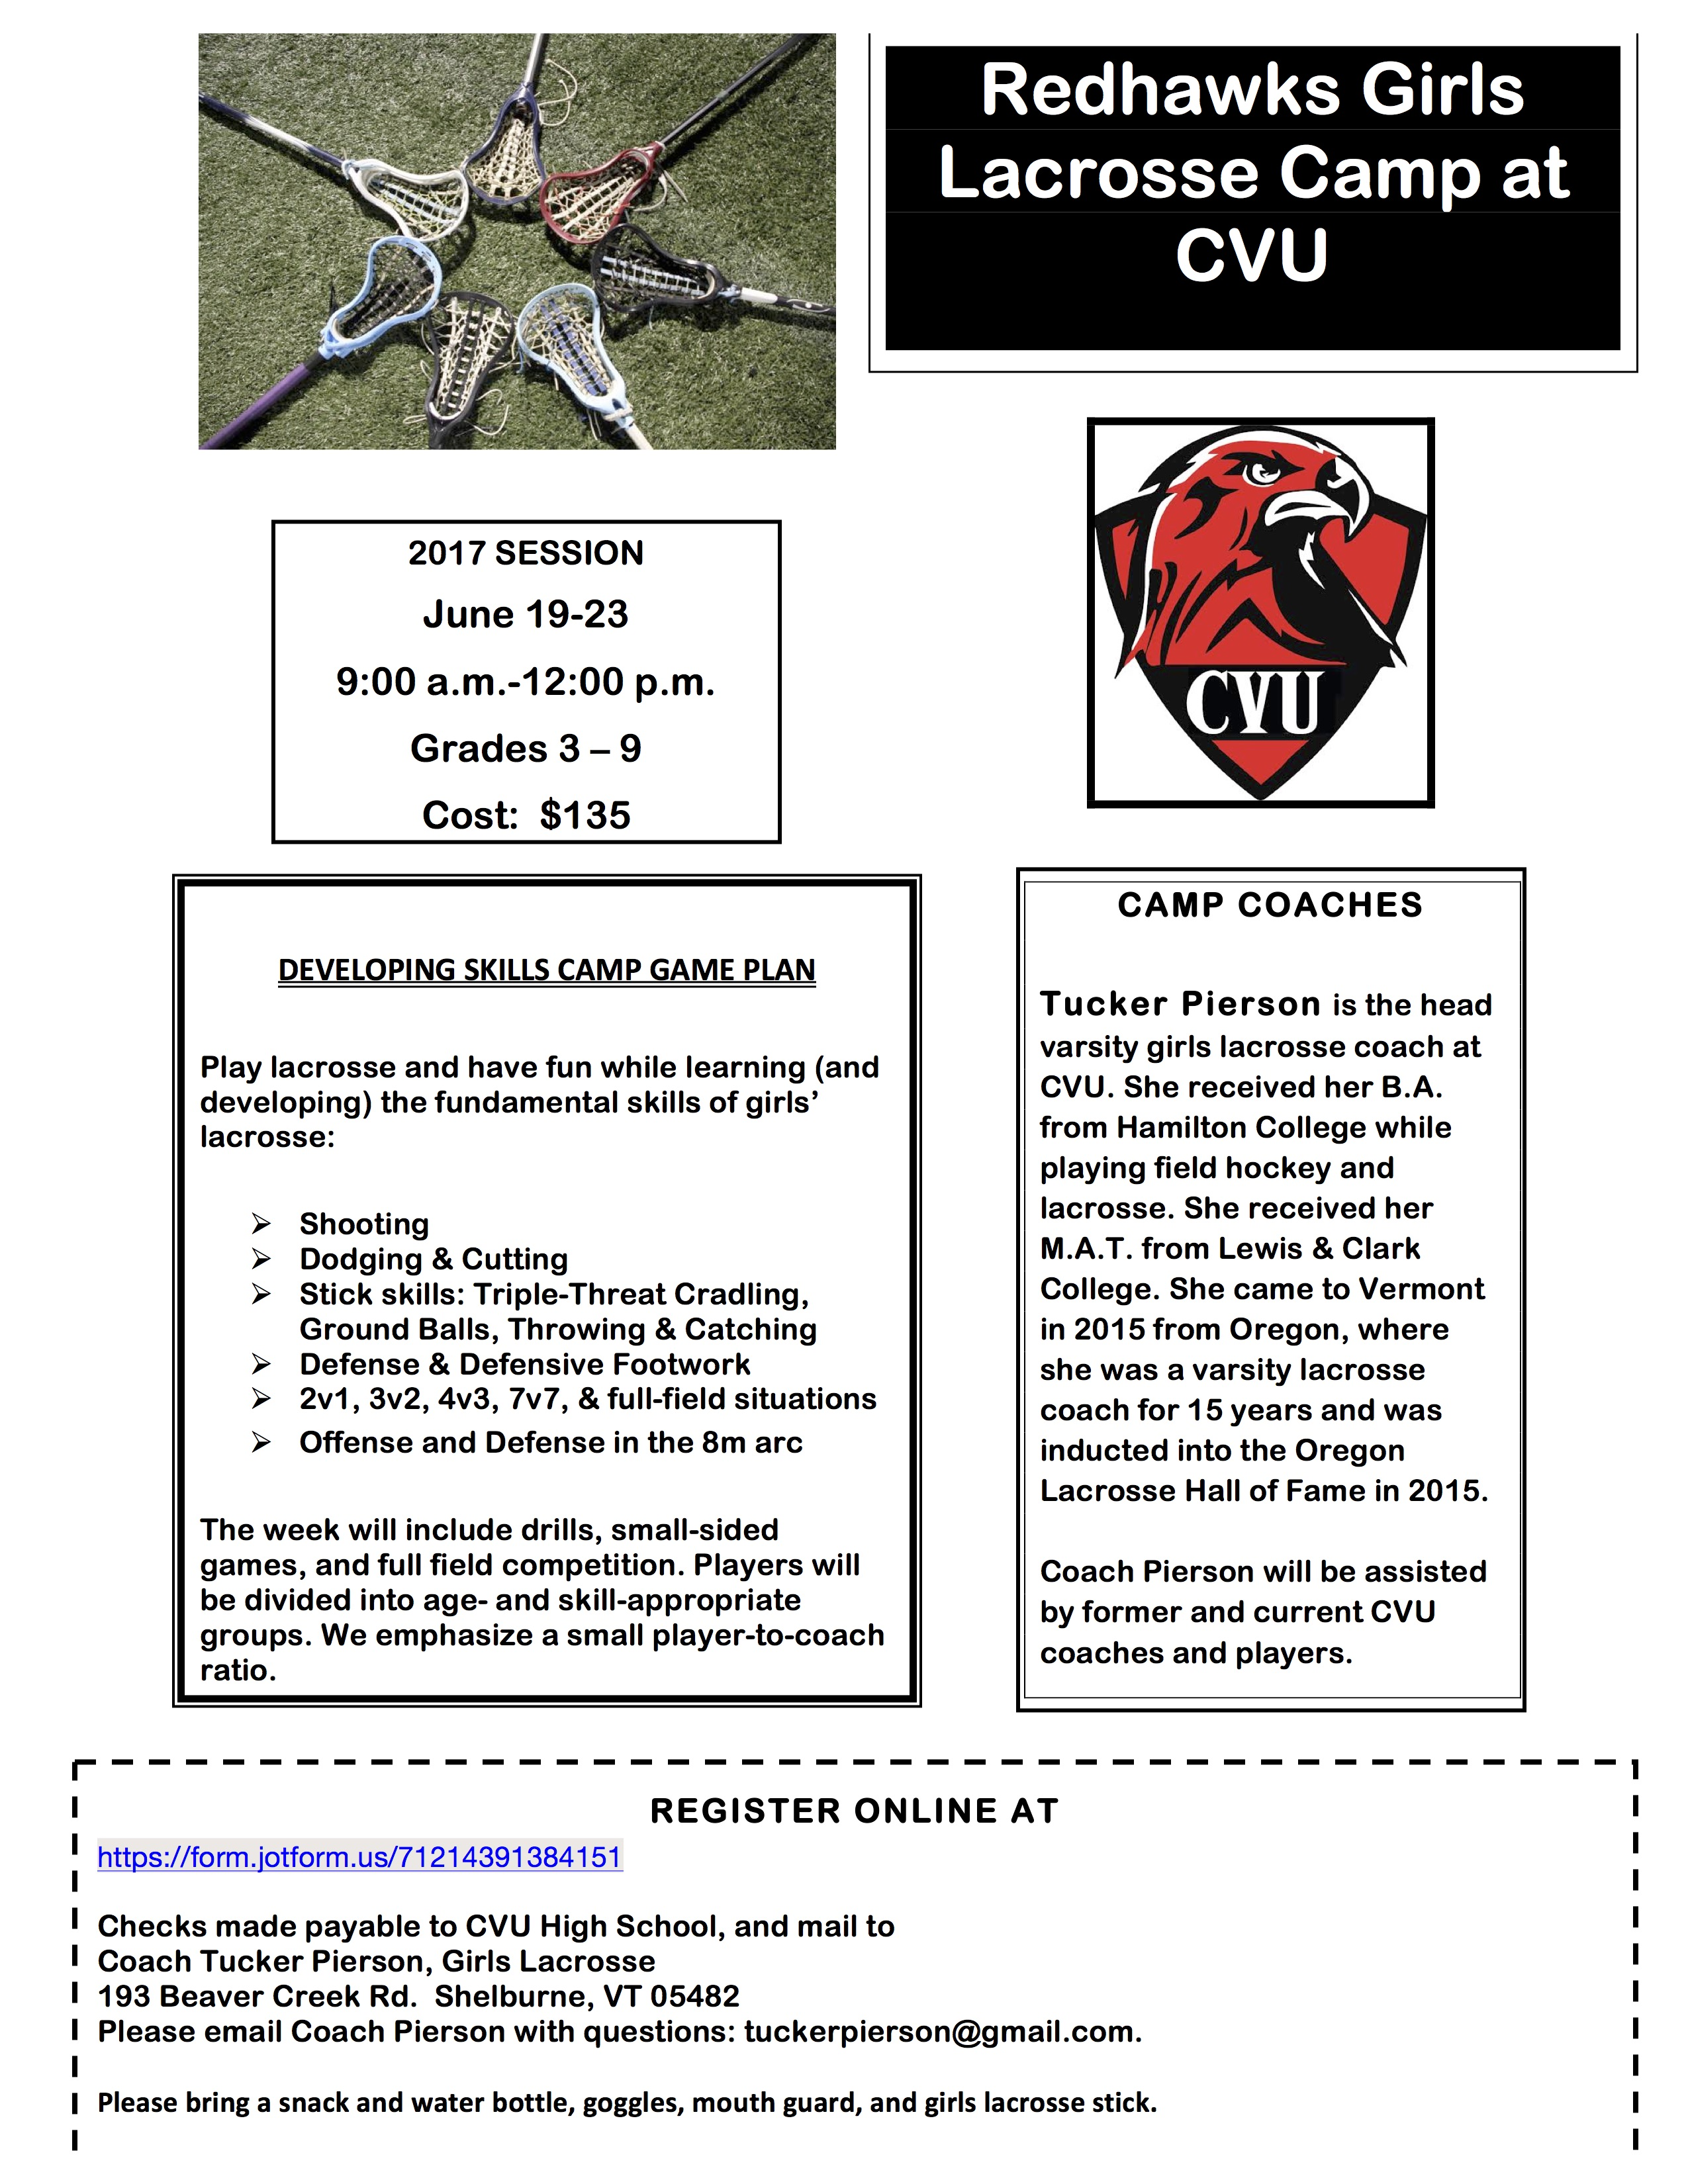 2017-redhawks-summer-lax-camp